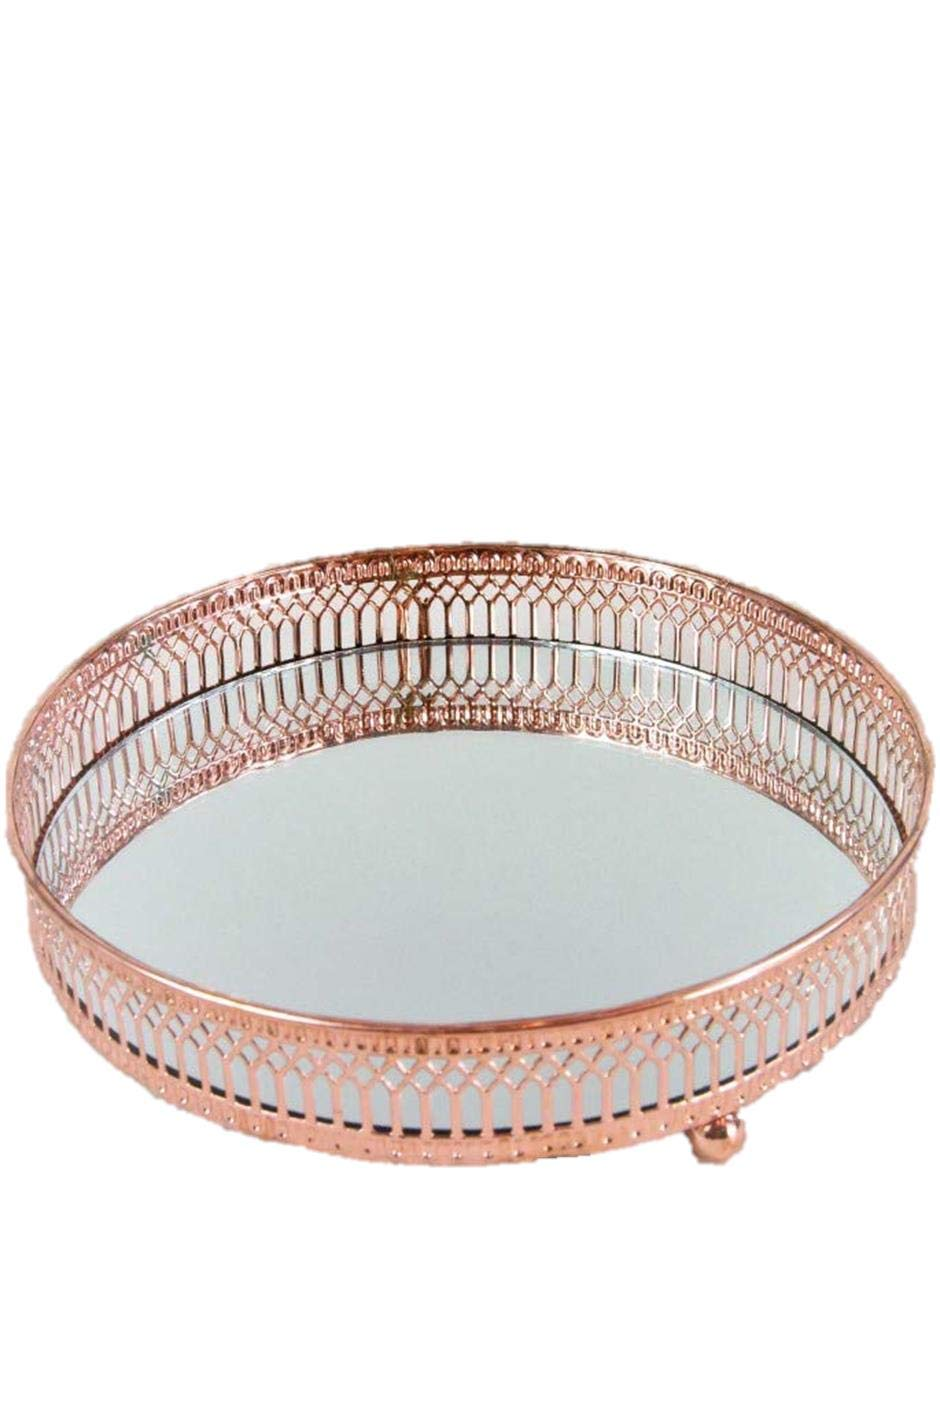 Four Seasons Tray Mirrored Rose Gold Copper Round Mirrored Tray Plate With Ornate Metal Trim Amazon Co Uk Kitchen Home